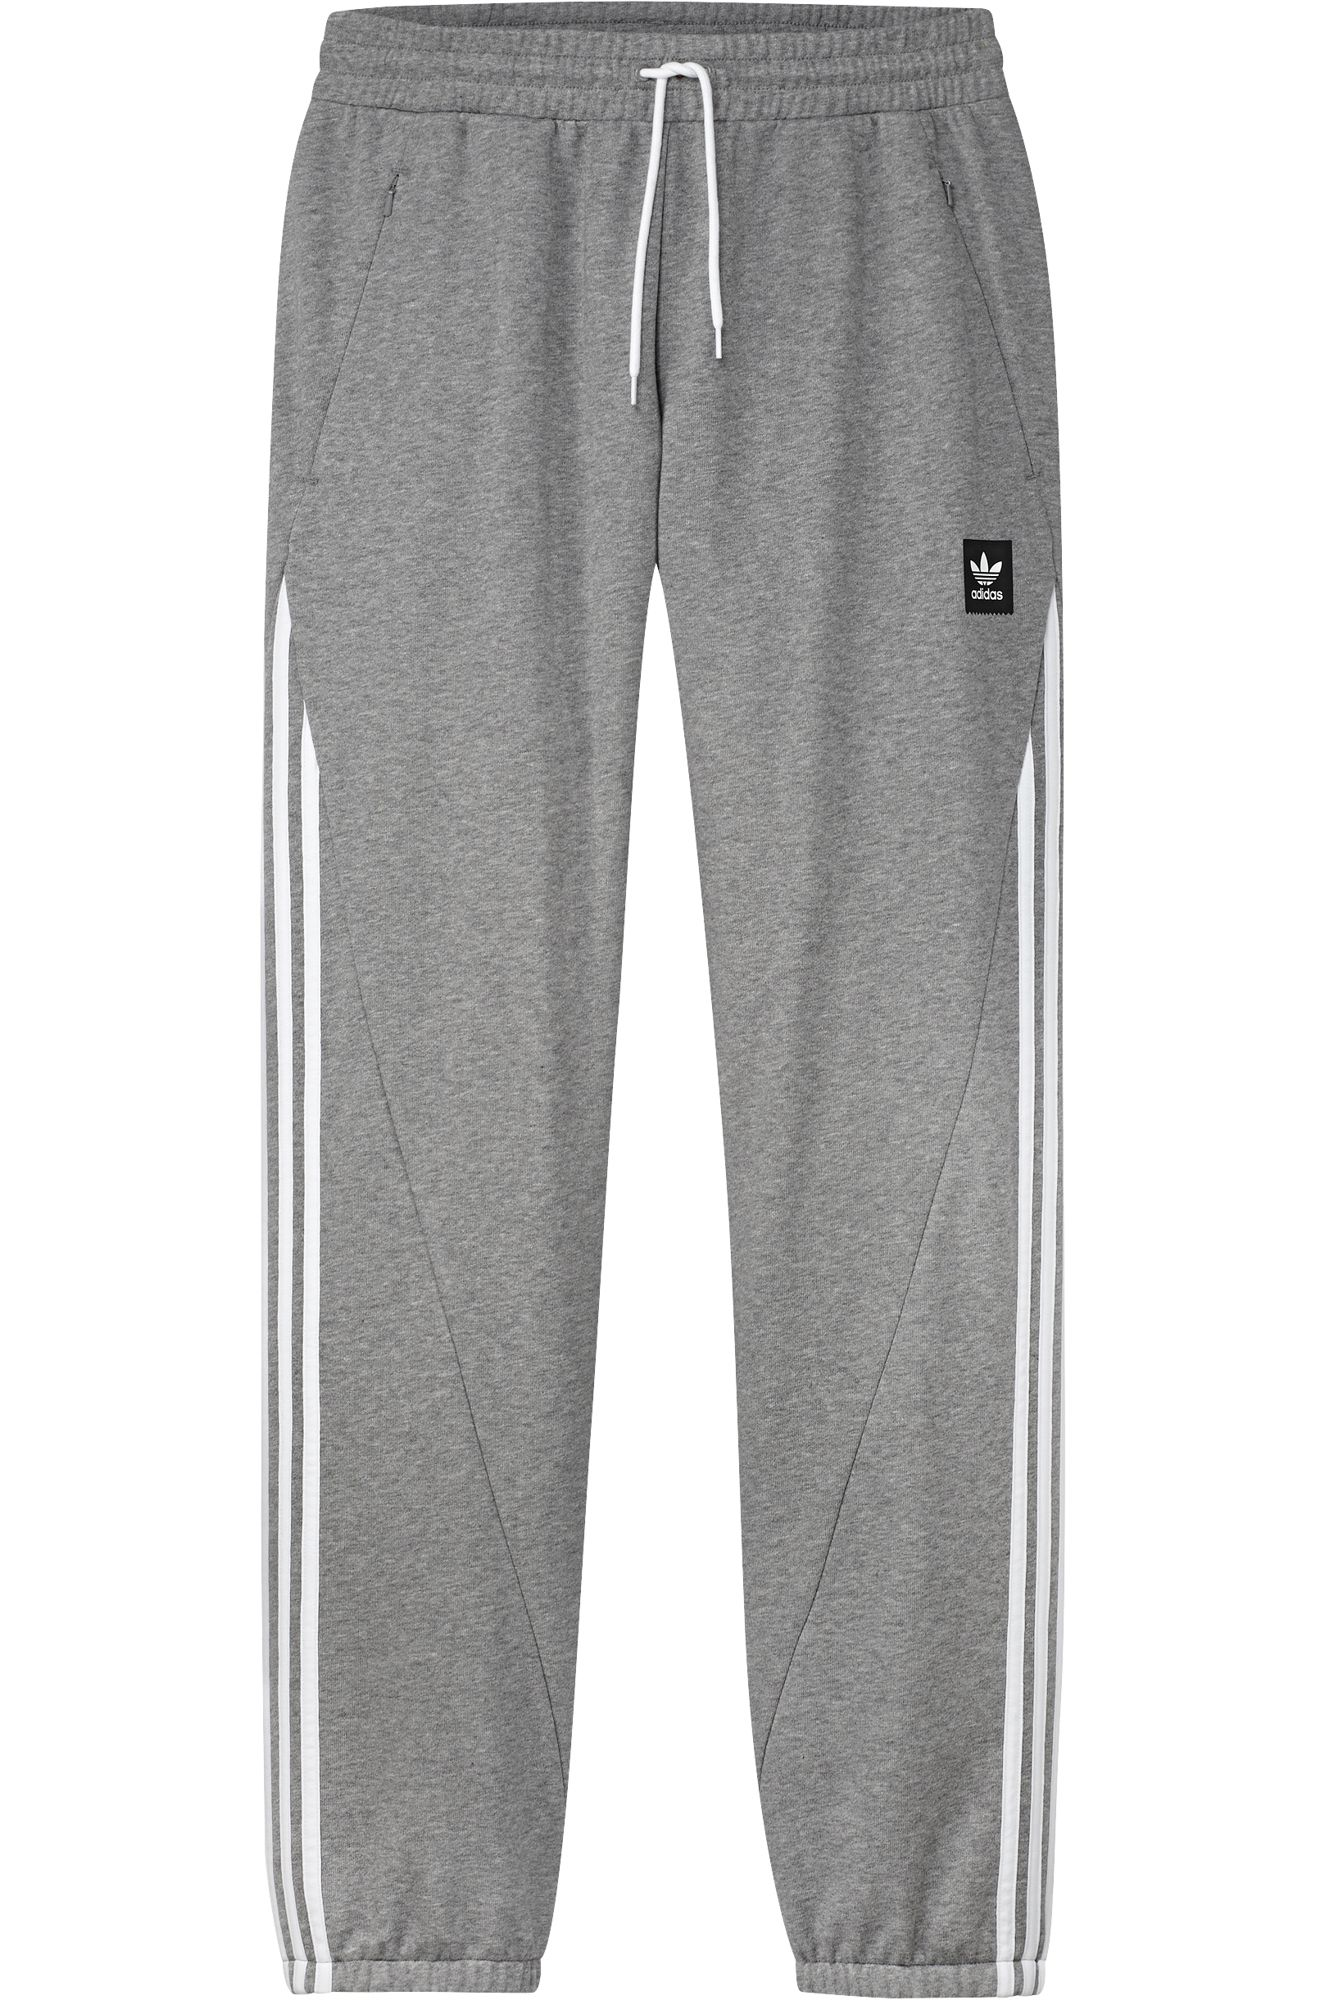 Calças Adidas INSLEY Medium Grey Heather/White